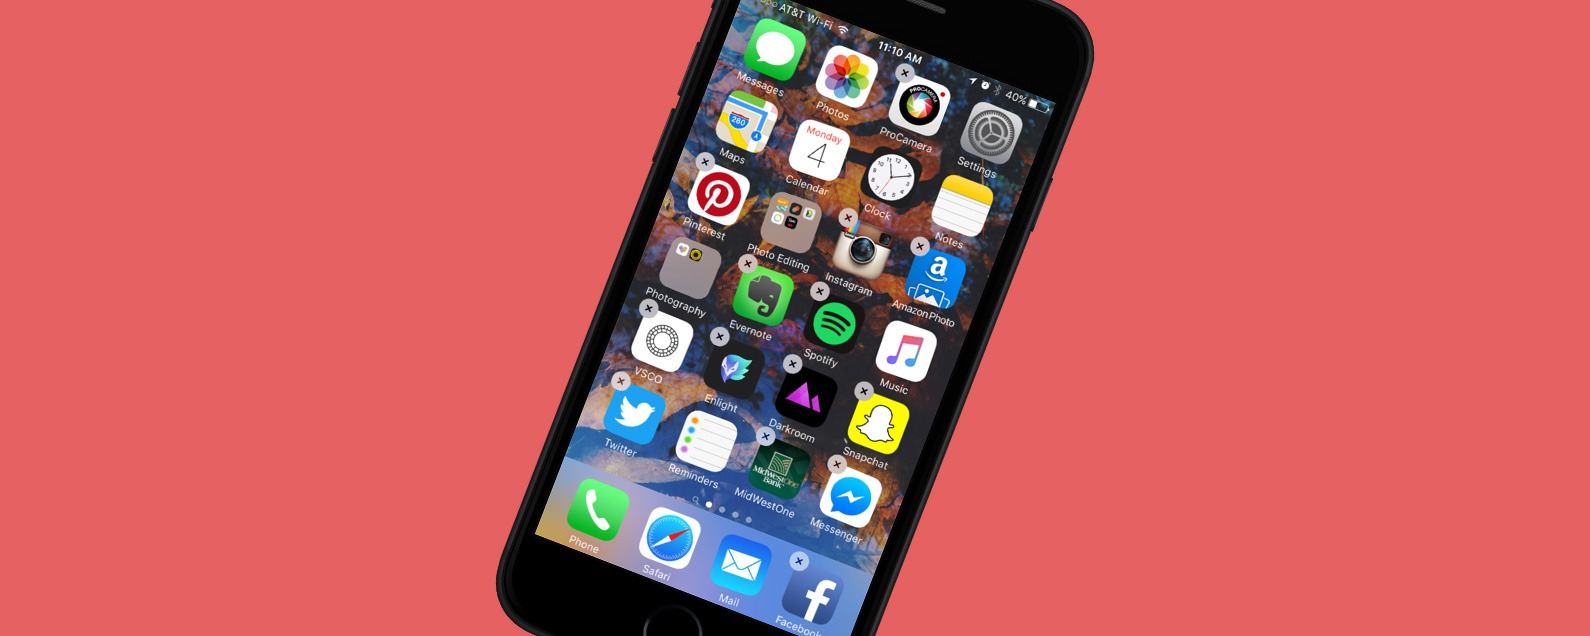 The Iphone S Dock Some People Refer To It As Menu Bar Or Home Screen Bottom Provides A Means Access Your Most Frequently Used From Any